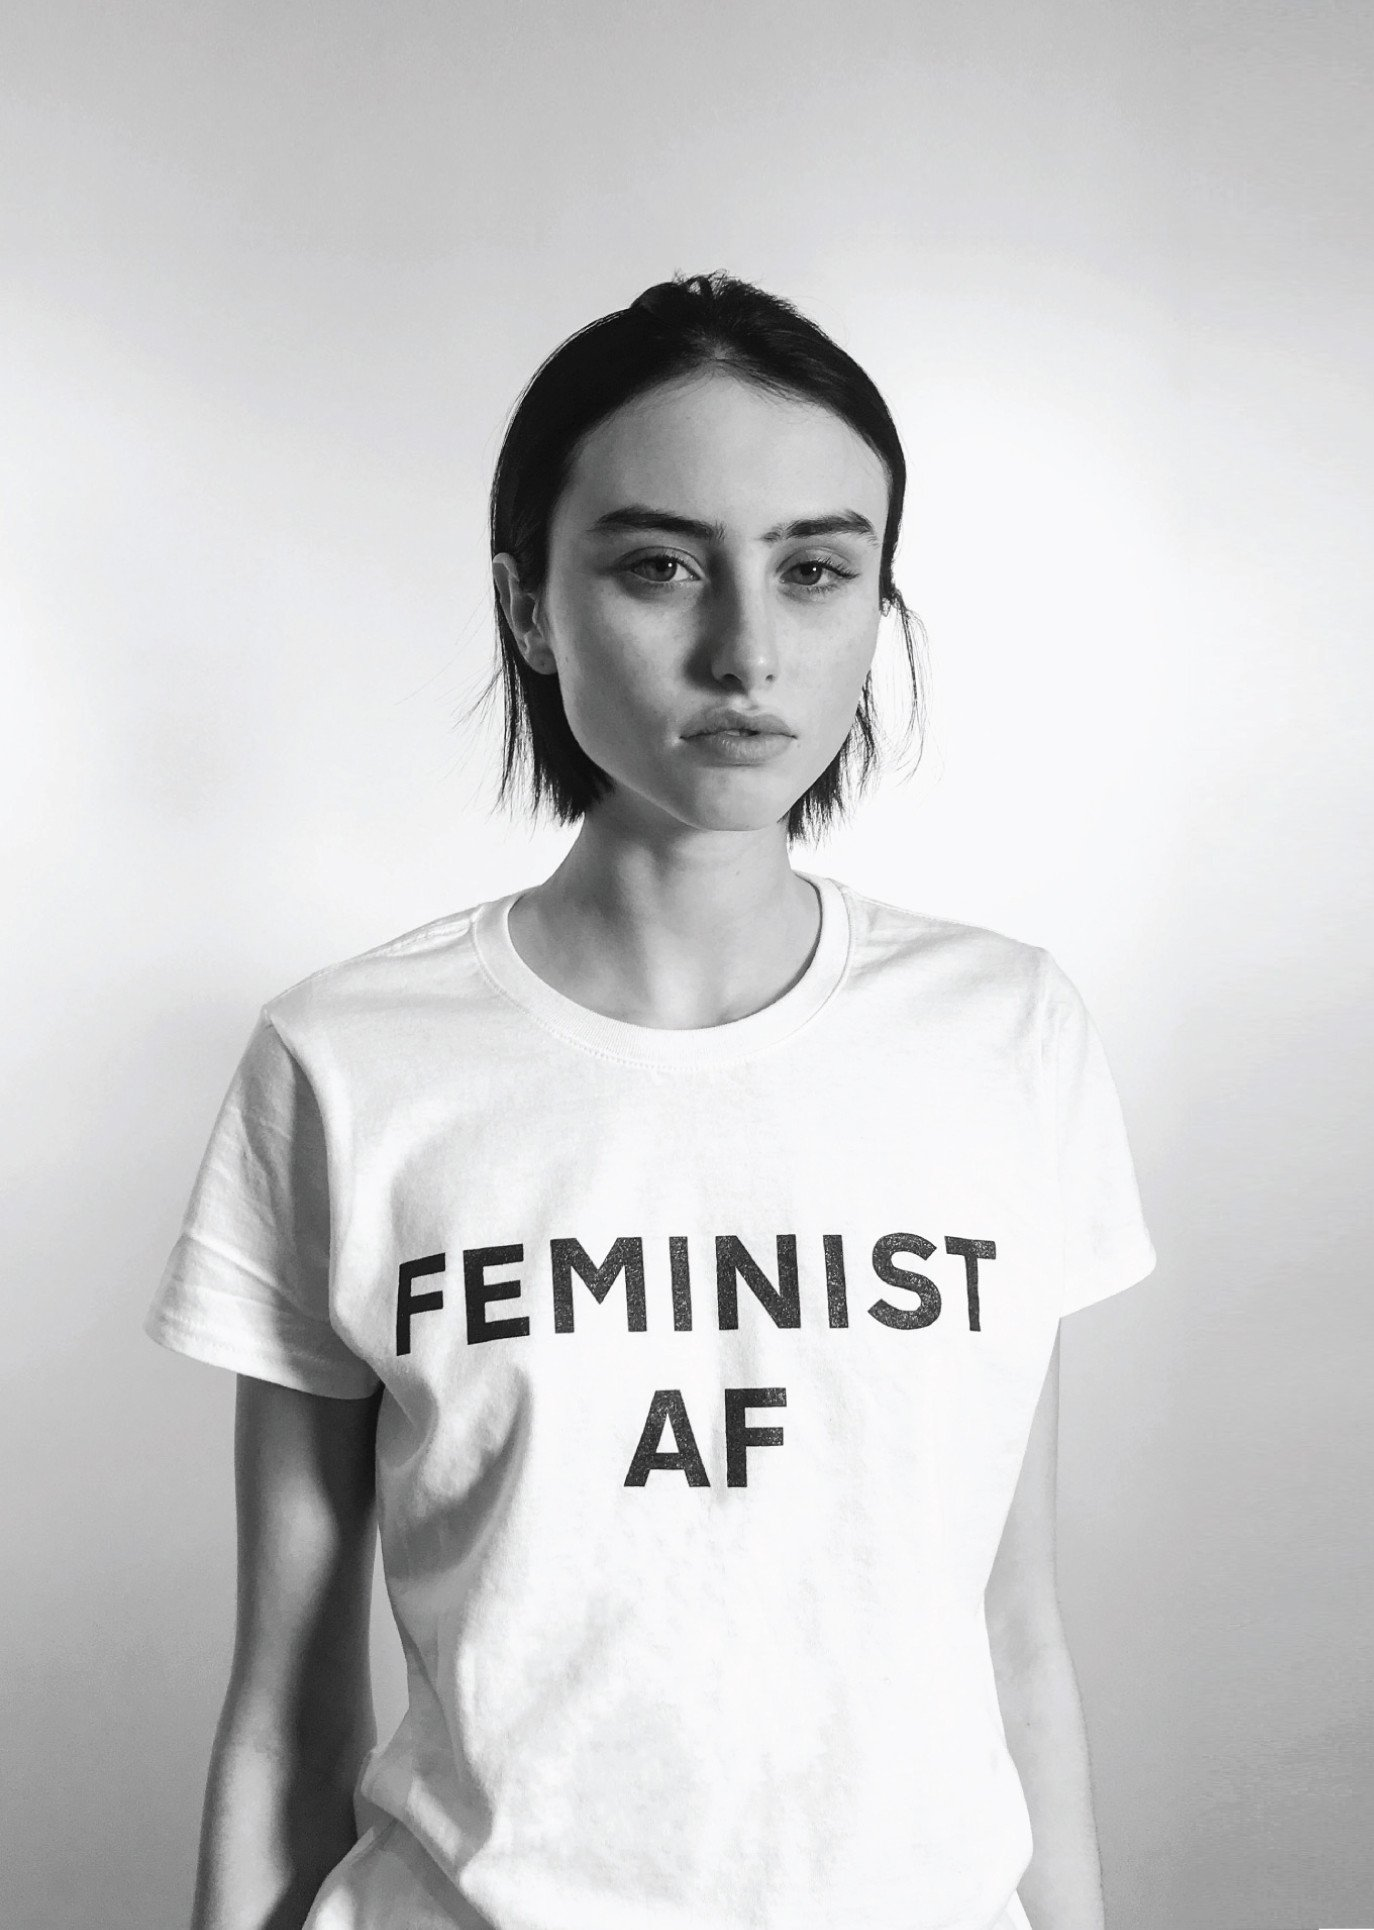 Feminist AF - simple and effective